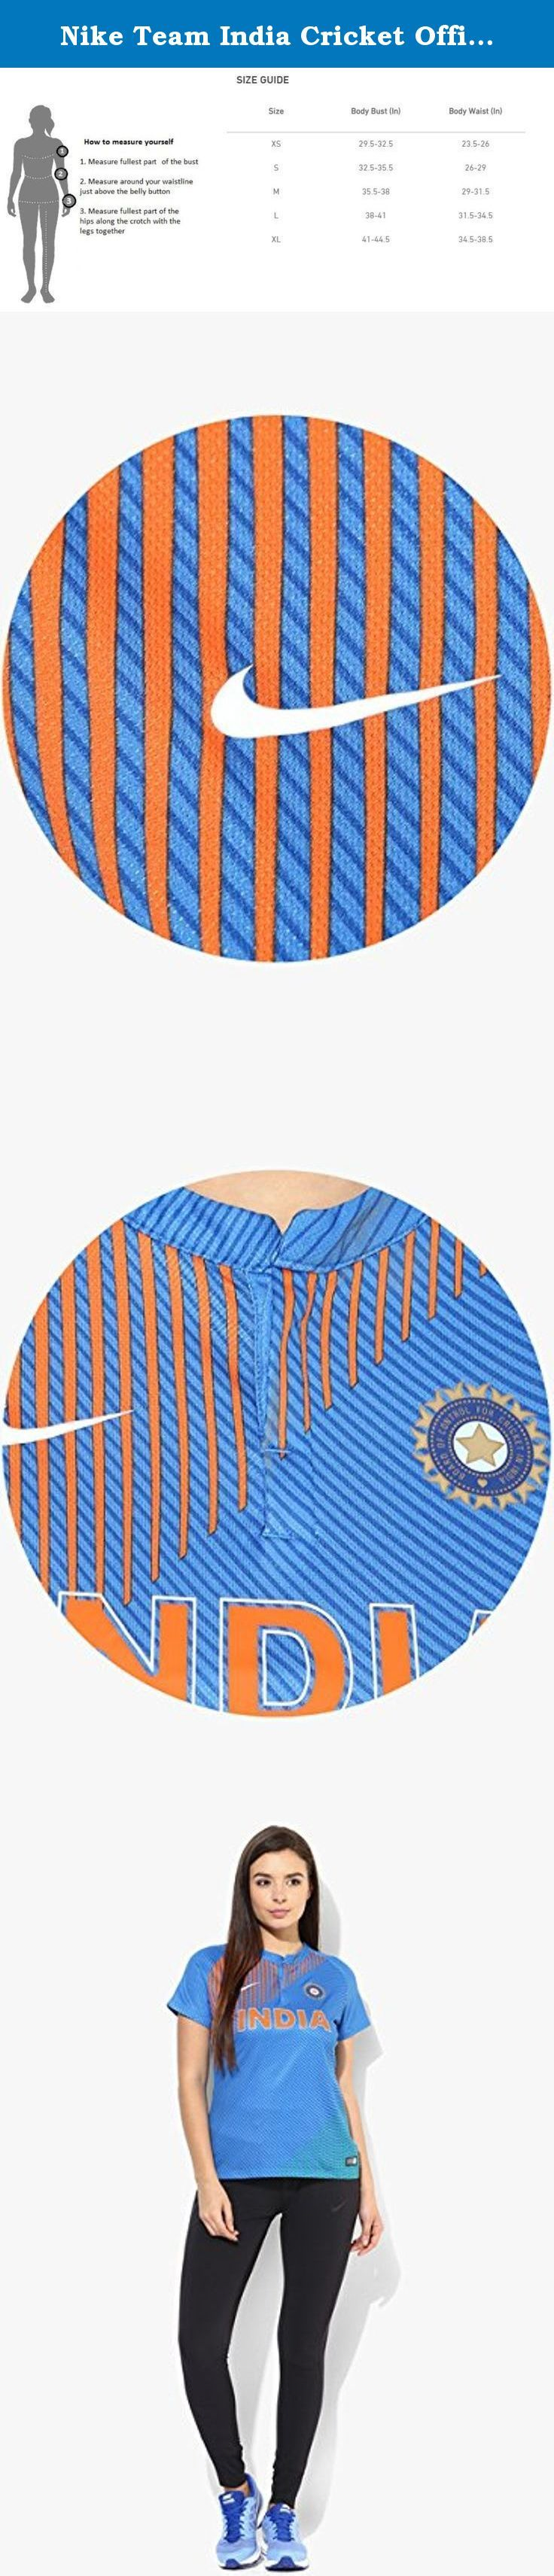 Nike Team India Cricket Official Premium Jersey New 2016-17 (Jersey for women, Large). The Official T20 India Cricket Replica Jersey for women is made with Dri-FIT fabric for breathable comfort and enhanced moisture management.